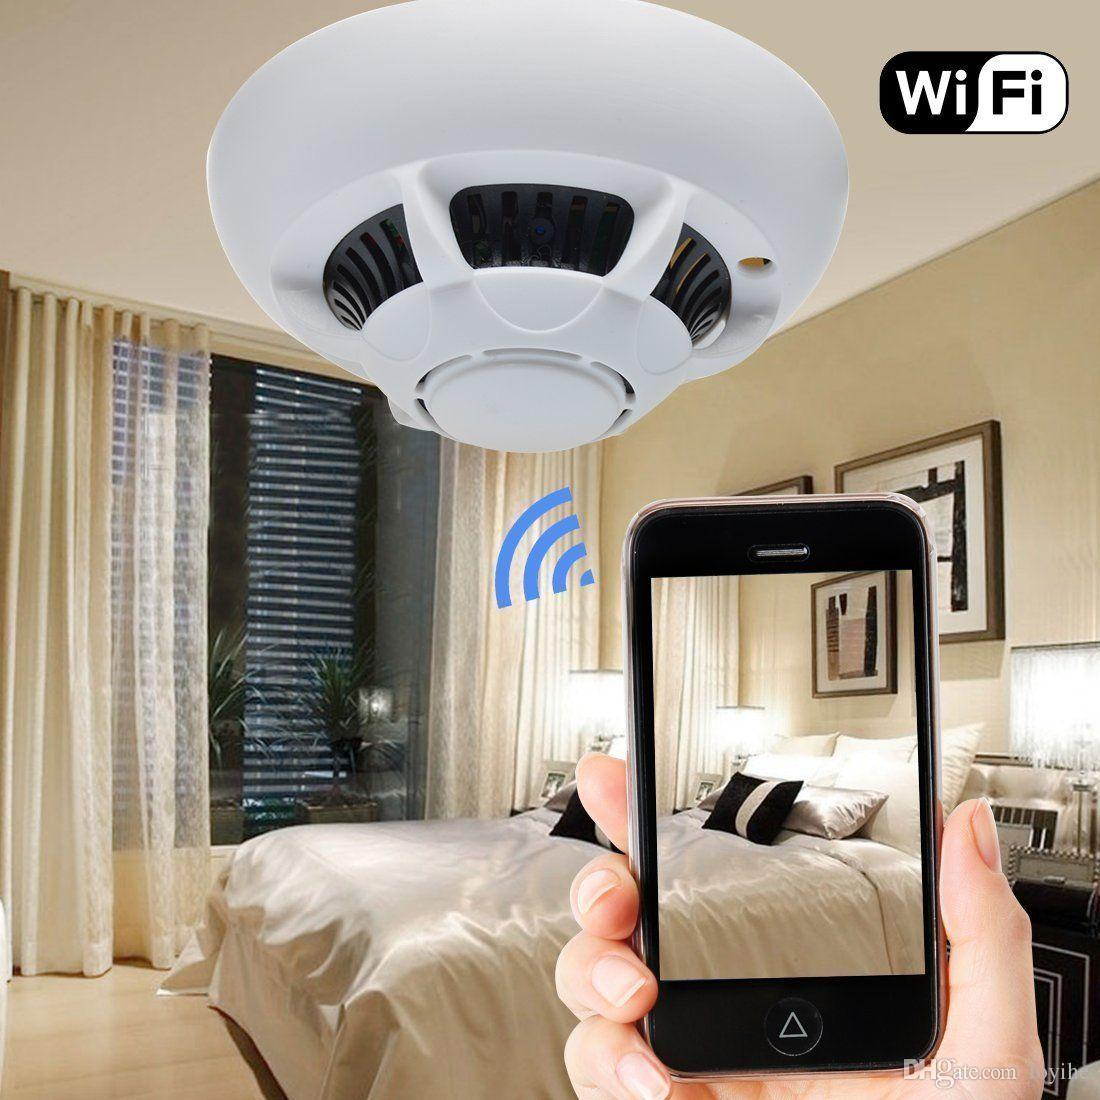 HD WIFI Wireless IP Camera Spy Hidden Camera Smoke Detector Security Video  DVR Cam Recoder P2P For IPhone Ipad Android Phone Web Security Cameras Web  ...